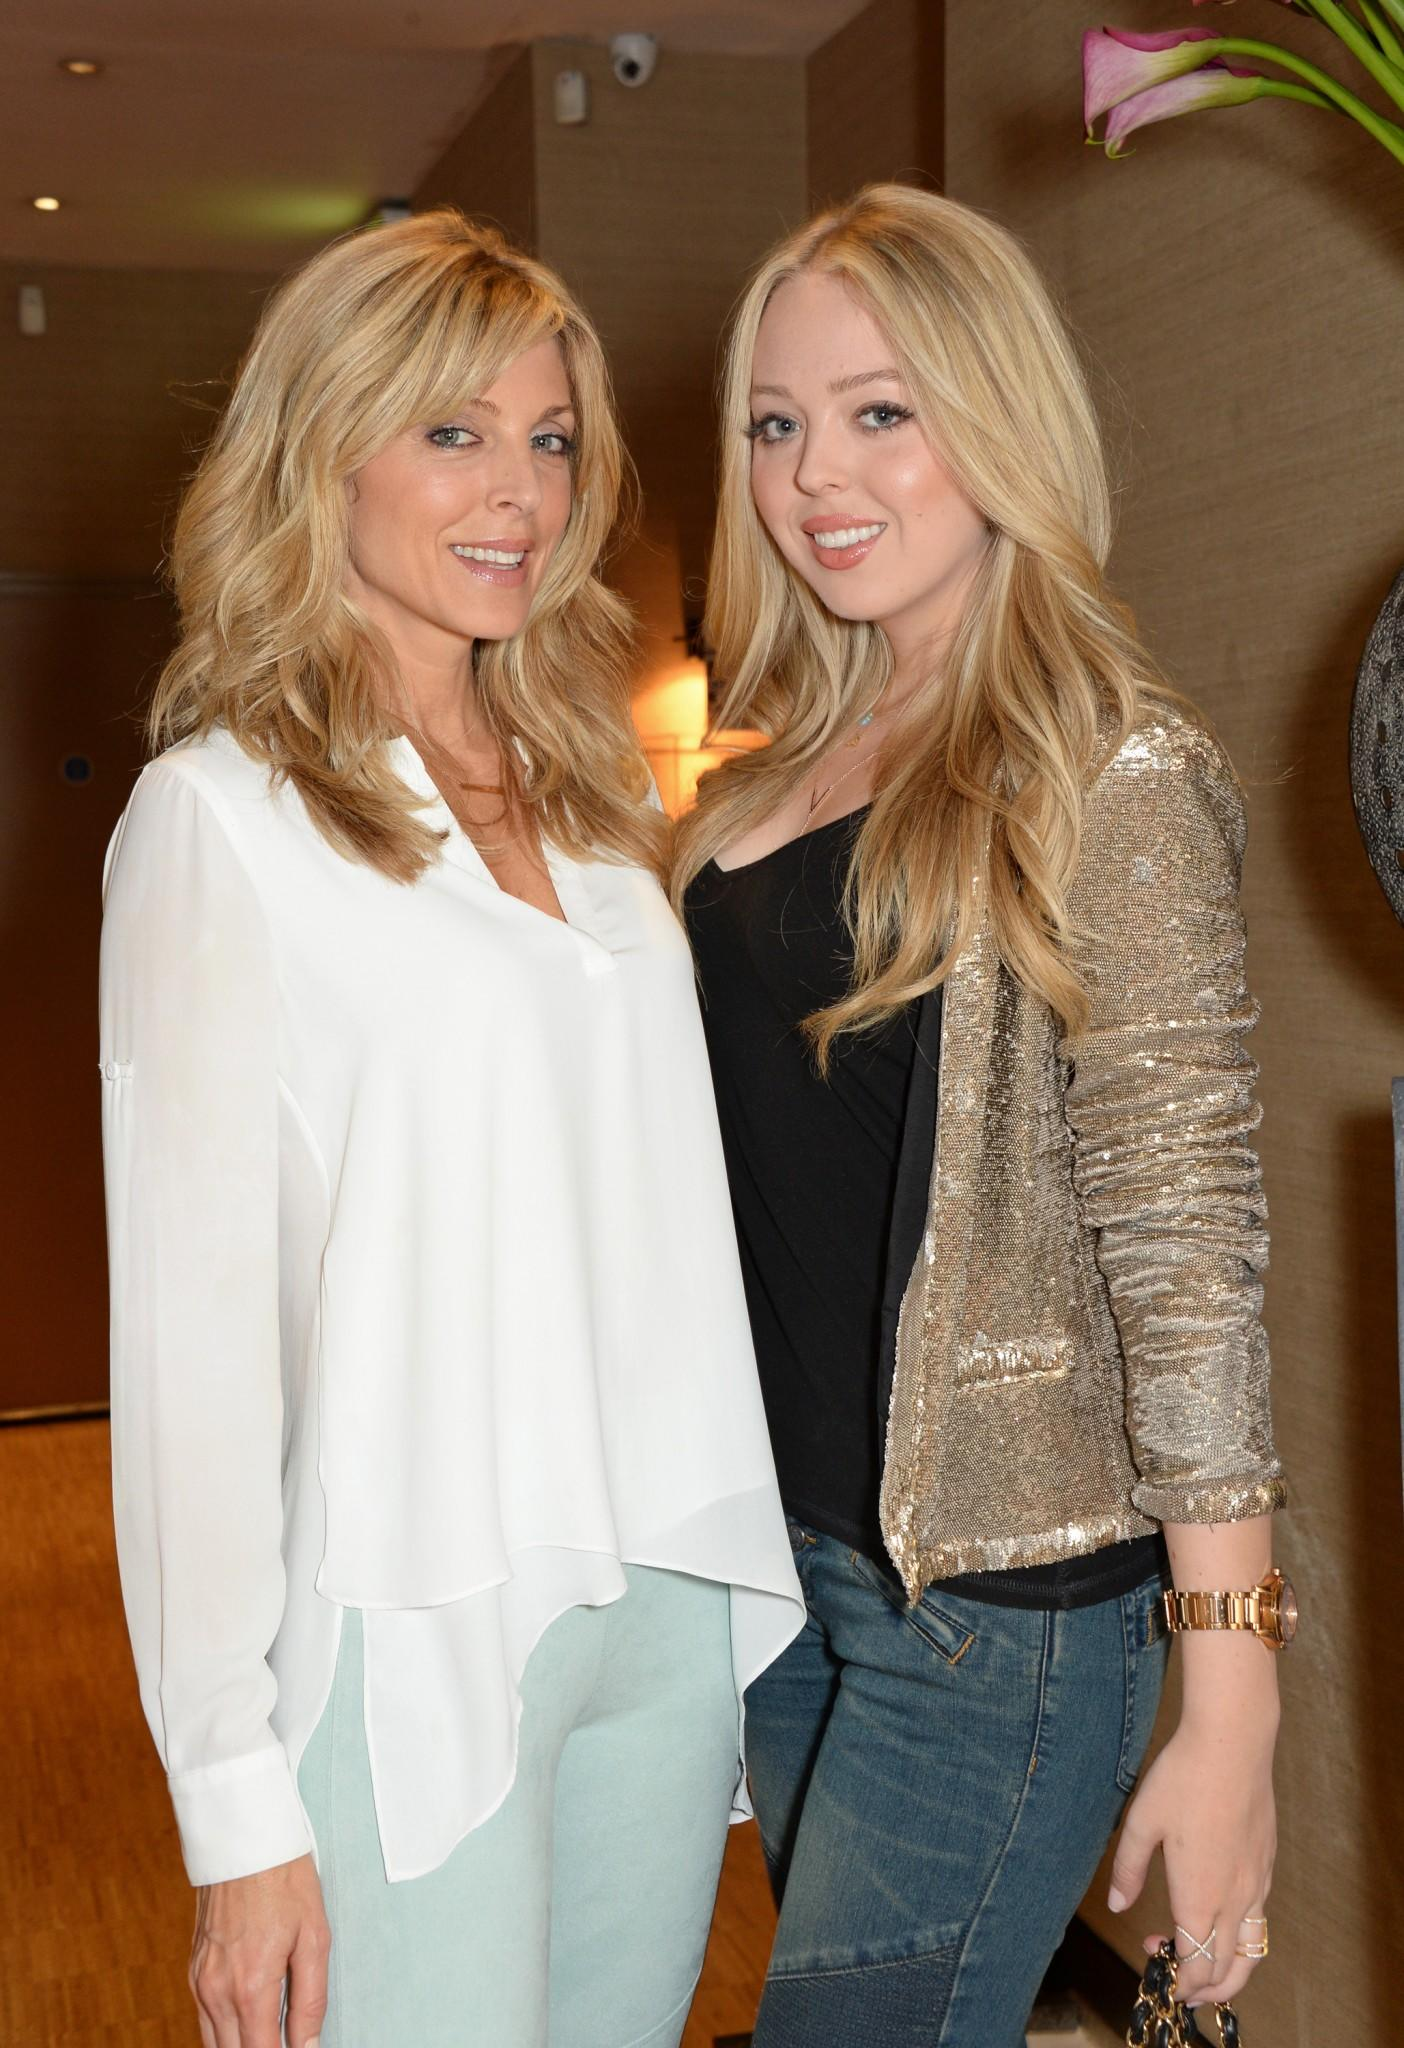 Tiffany Trump, Marla Maples Reportedly Asked for Free Styling in Exchange for 'Exposure'